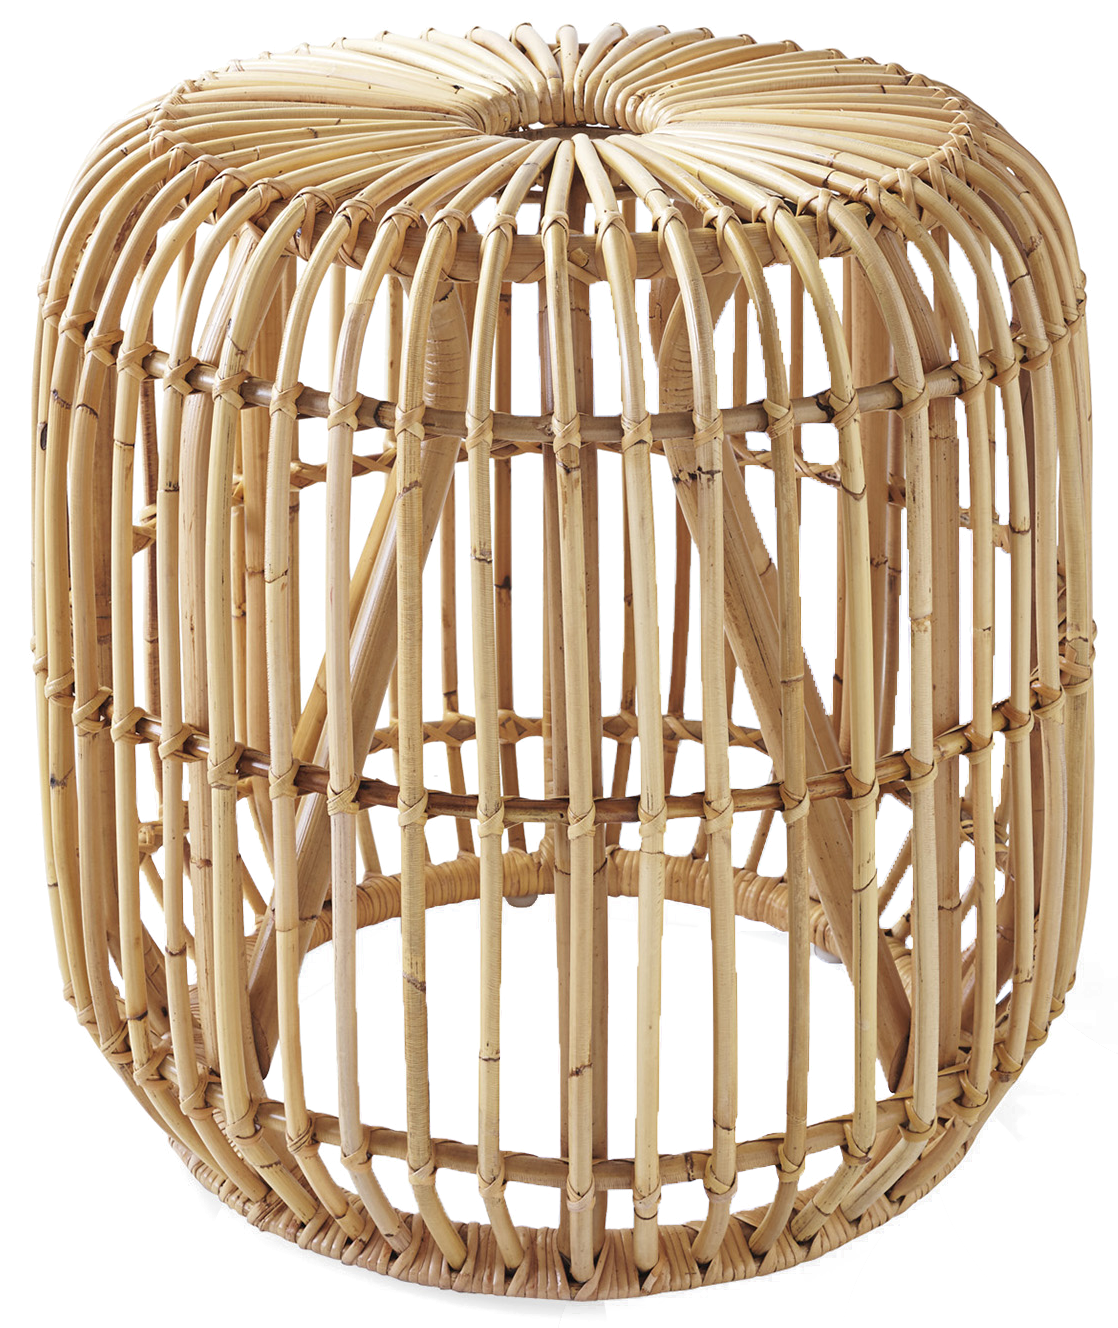 Dira_Stool_Rattan_Natural_MV_Crop_SH copy.png